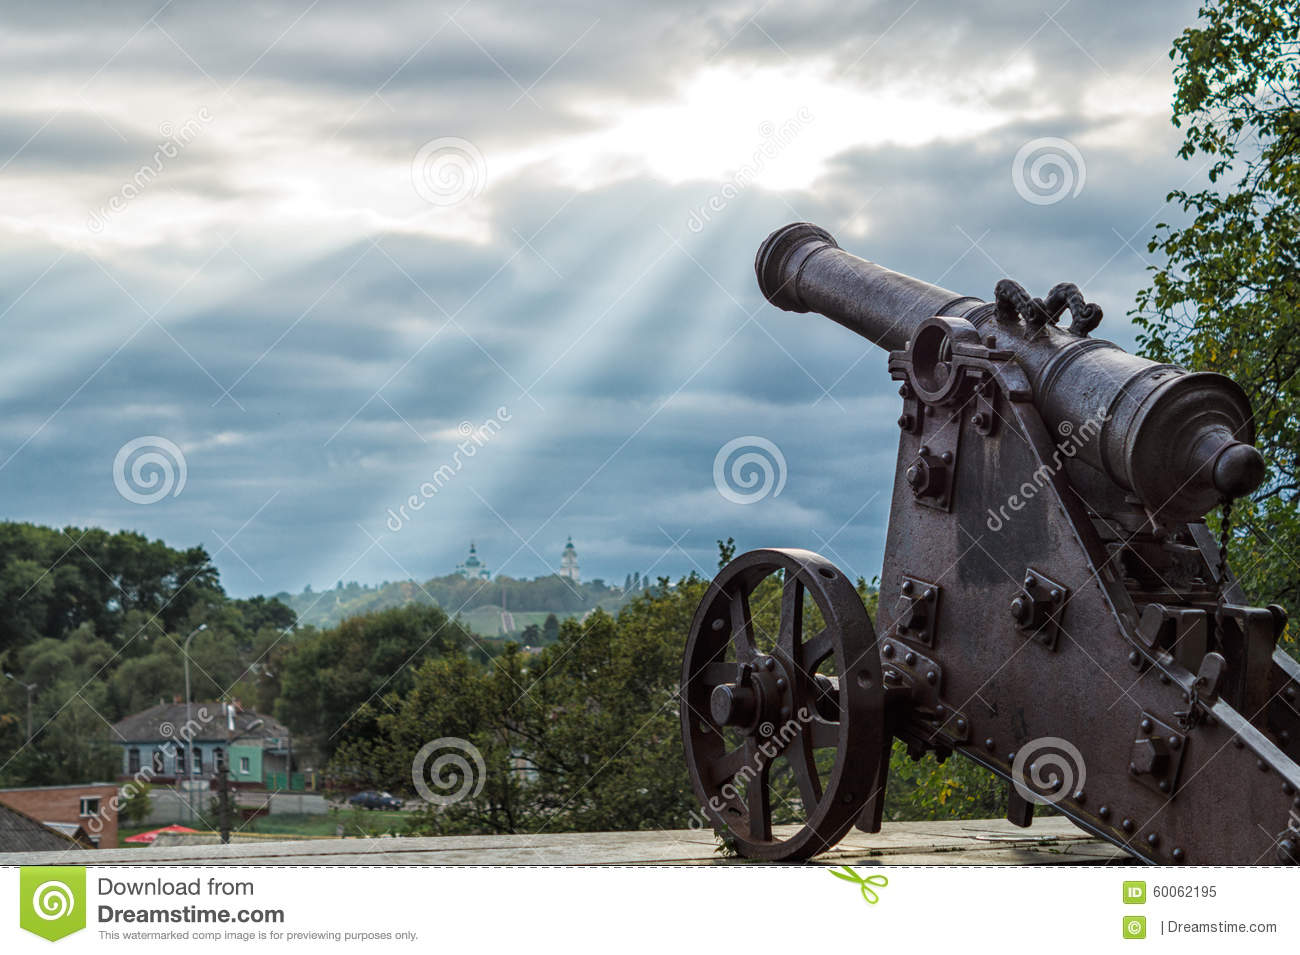 Chernihiv Ukraine  city images : An old cannon monument in Chernihiv, Ukraine.